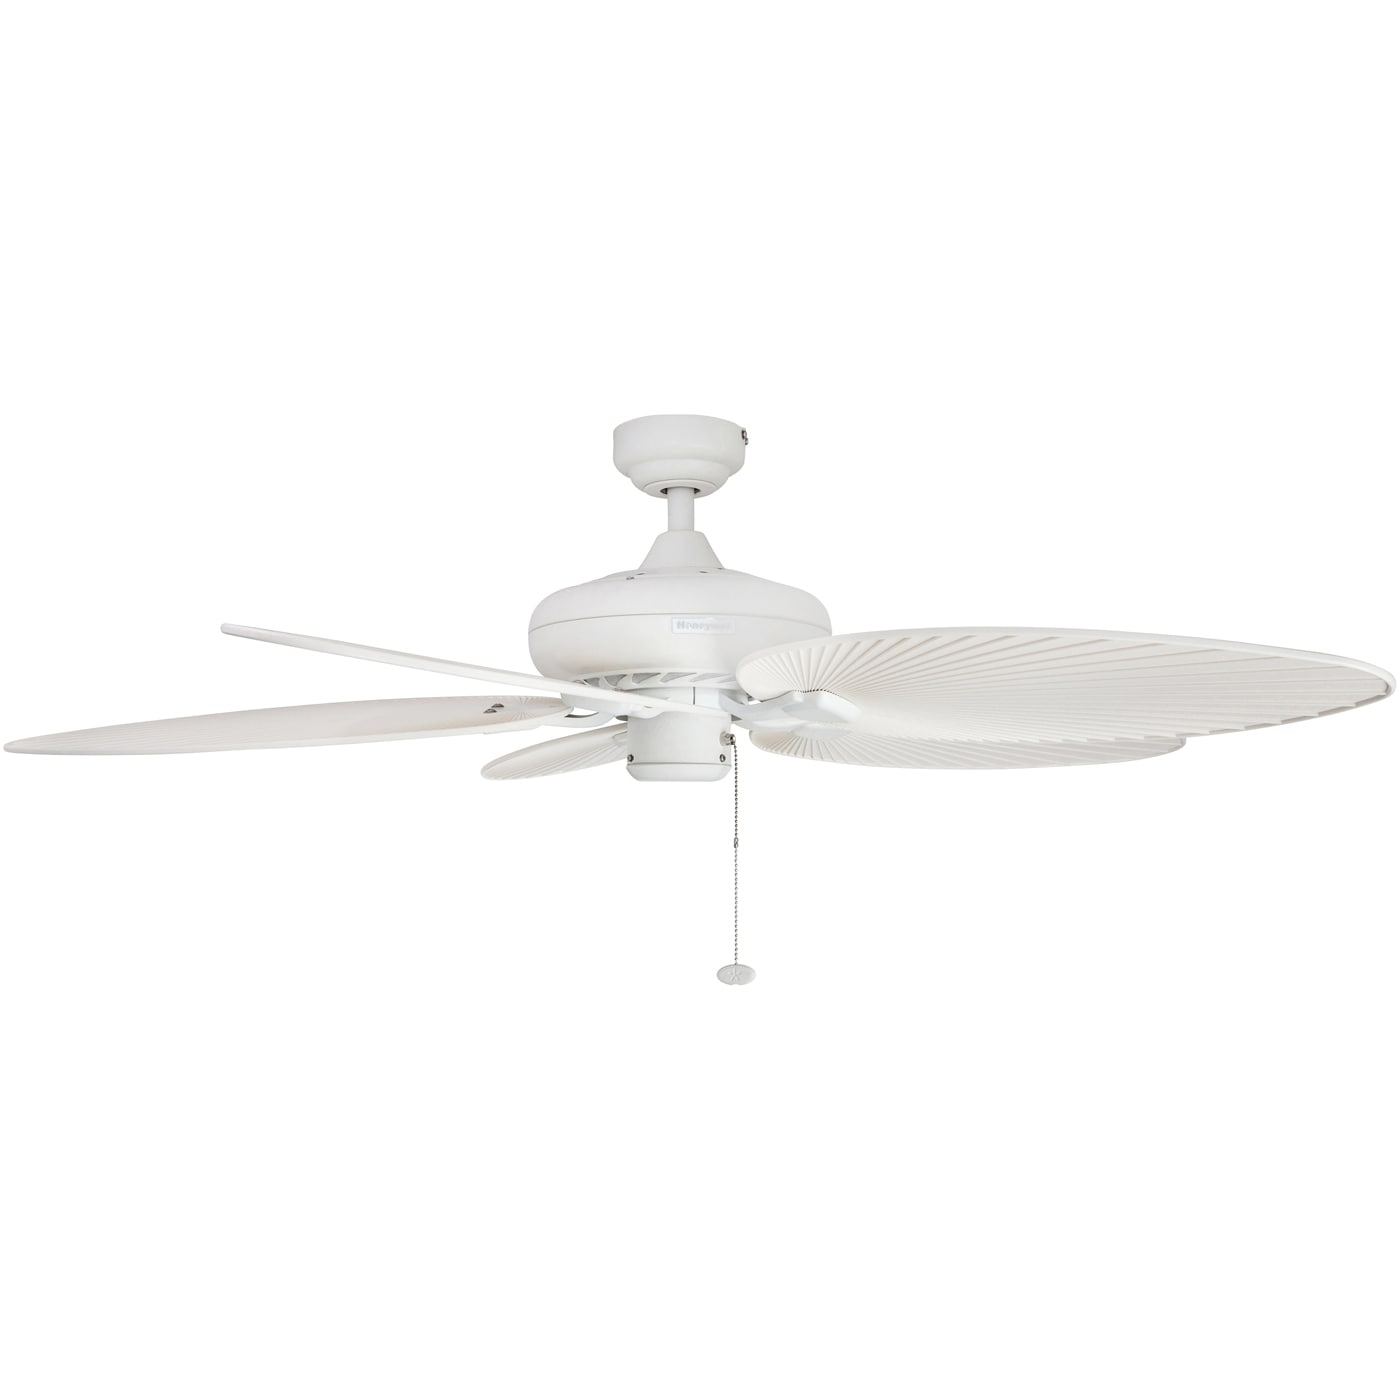 "52"" Honeywell Palm Island White Ceiling Fan with Palm Blades"